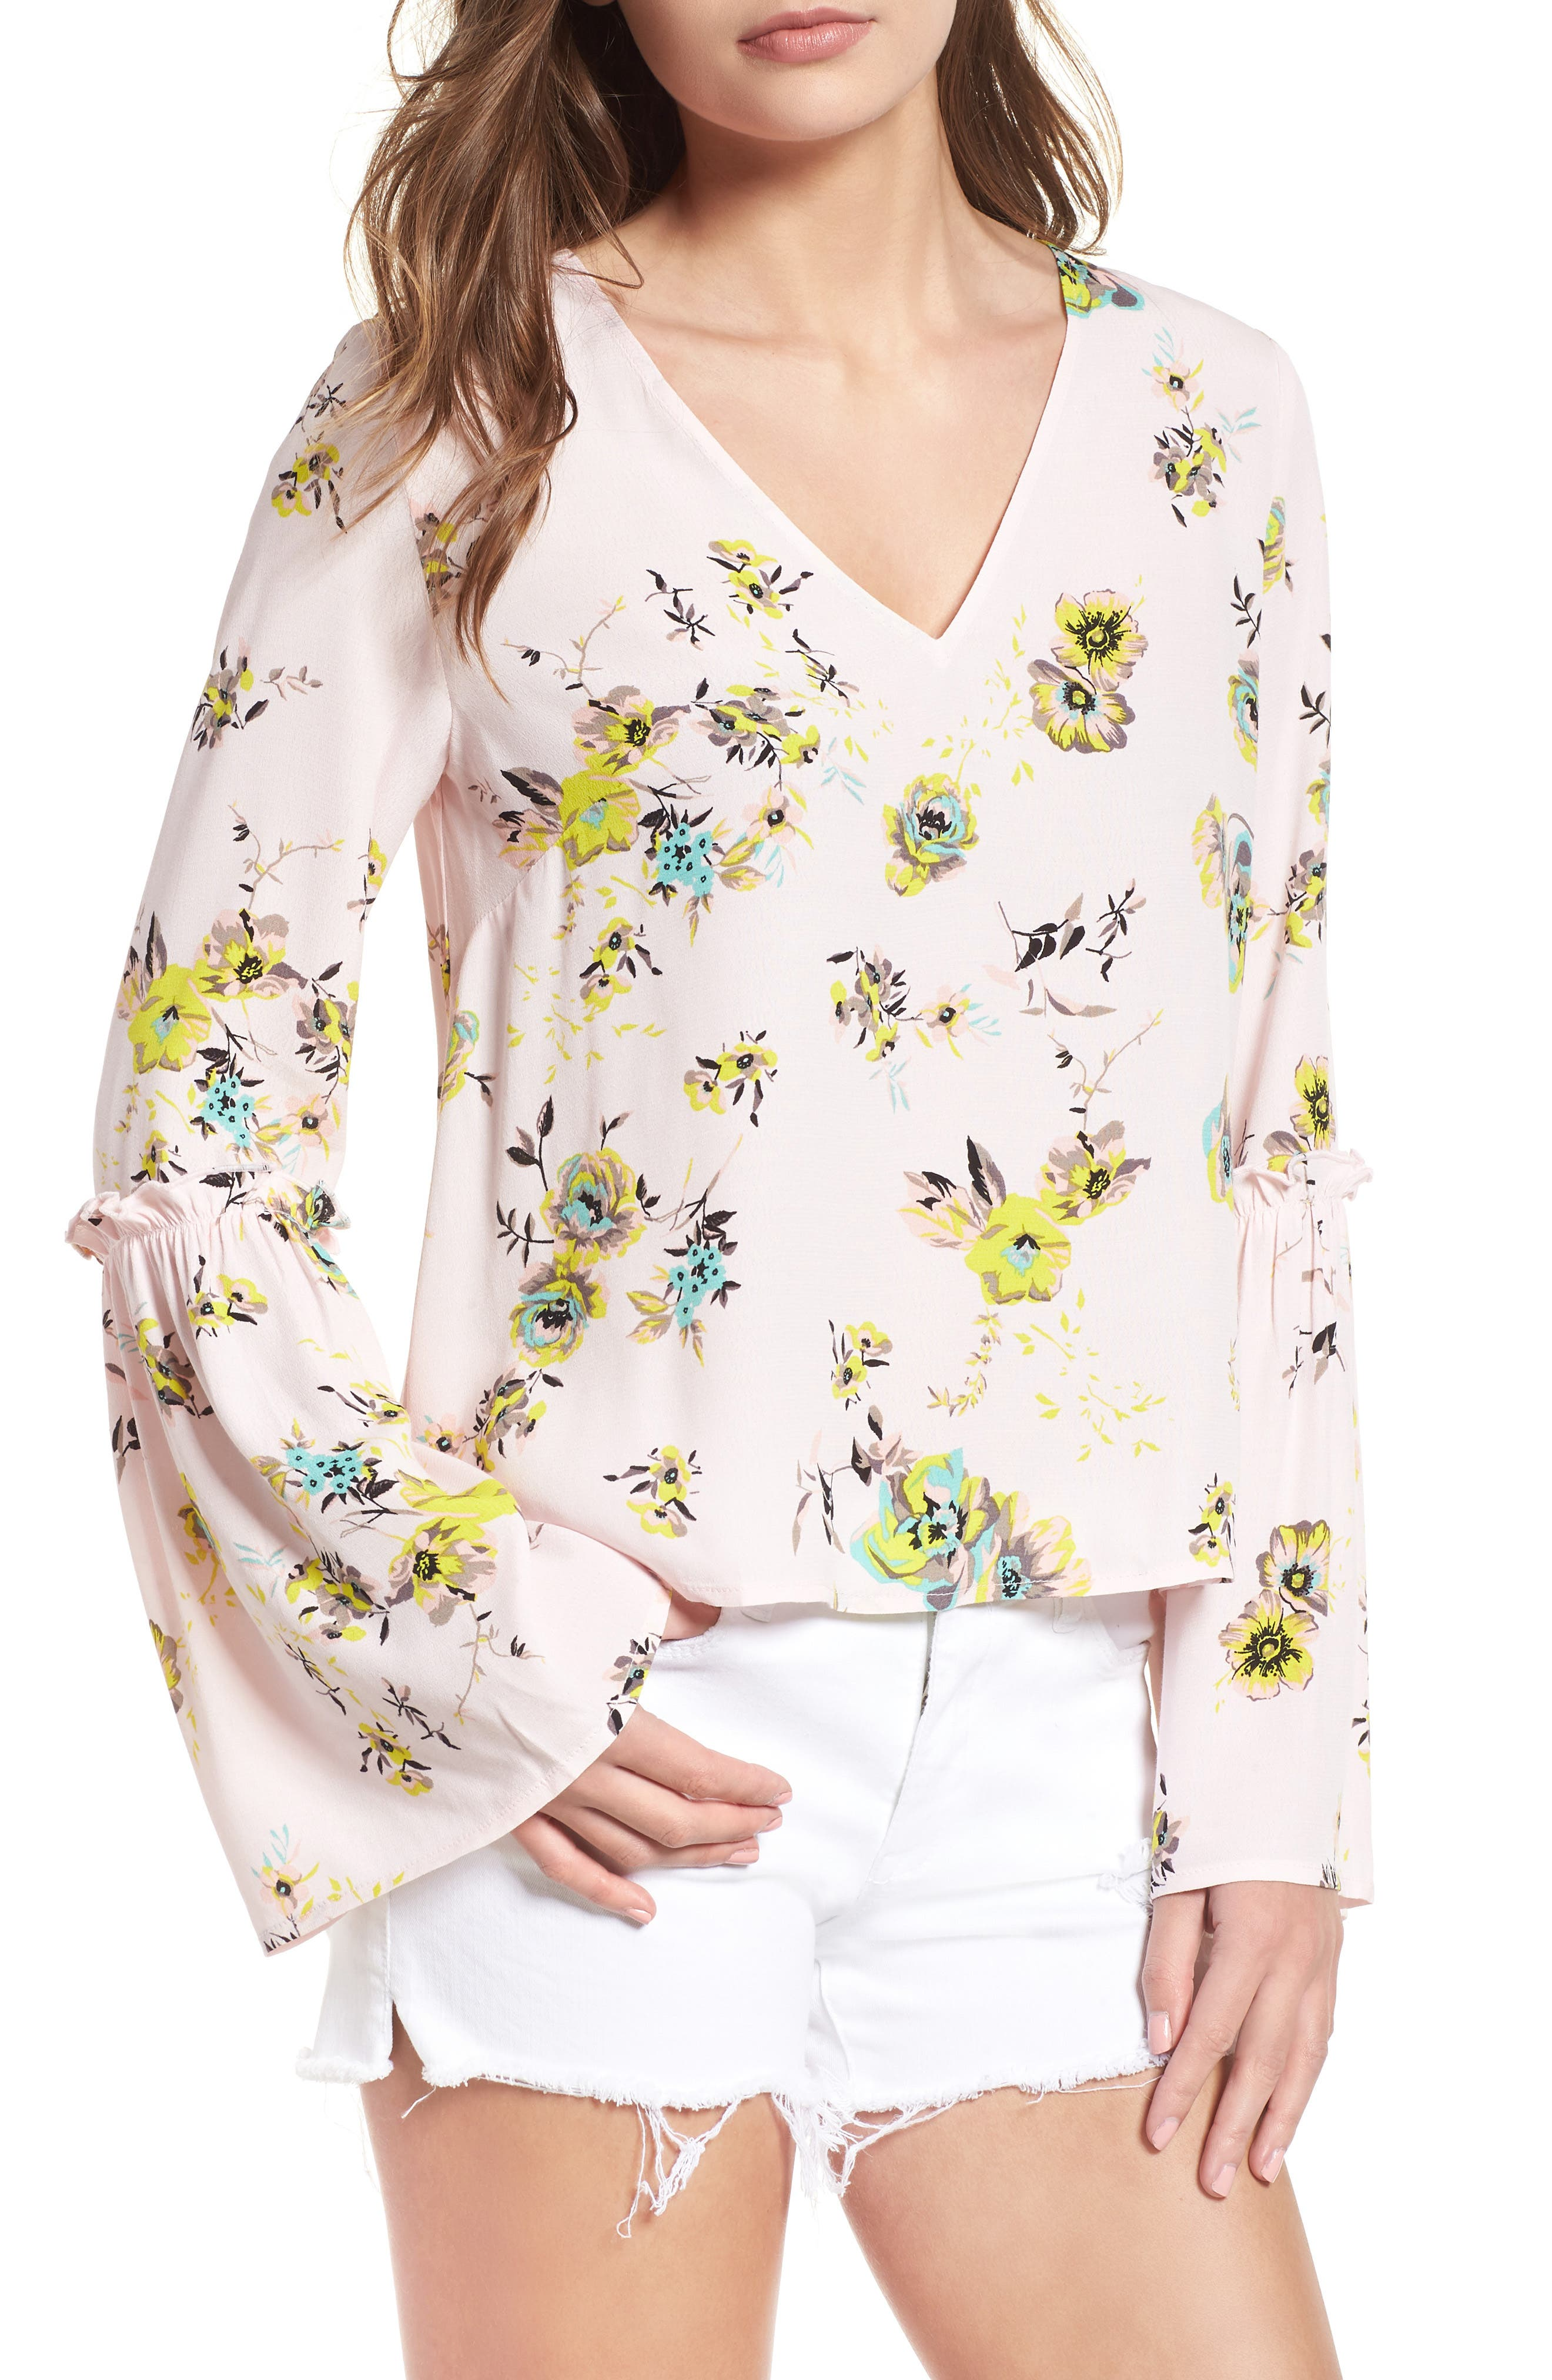 Bell Sleeve Blouse,                             Main thumbnail 1, color,                             680